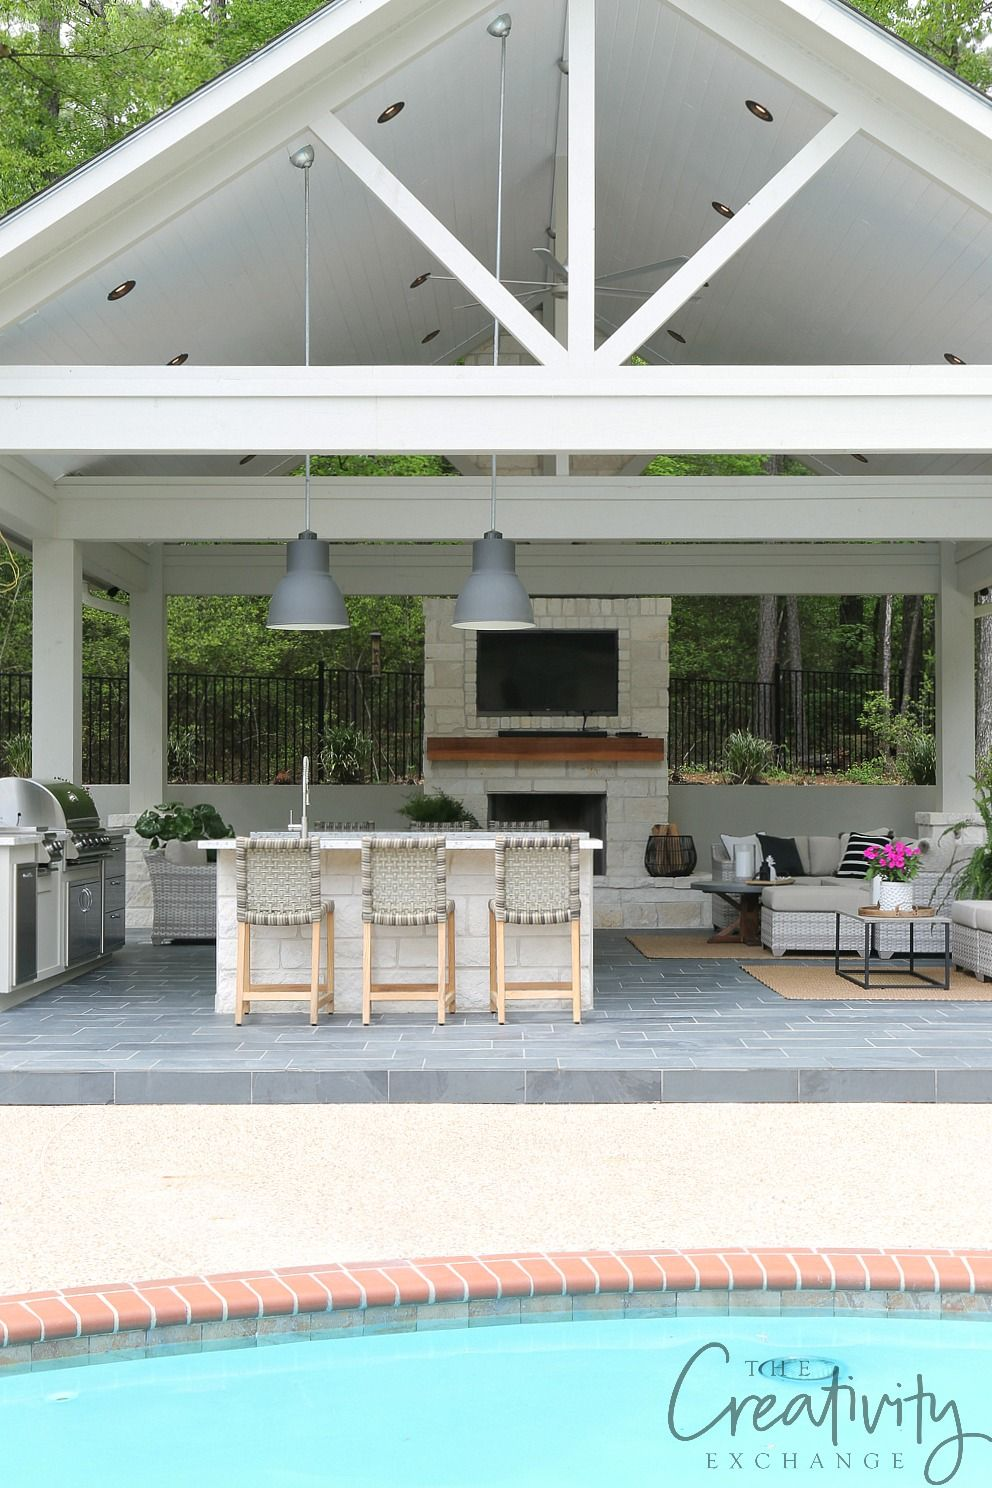 Outdoor Kitchen And Pool House Project Reveal Outdoor Kitchen Design Layout Outdoor Living Space Design Pool Houses